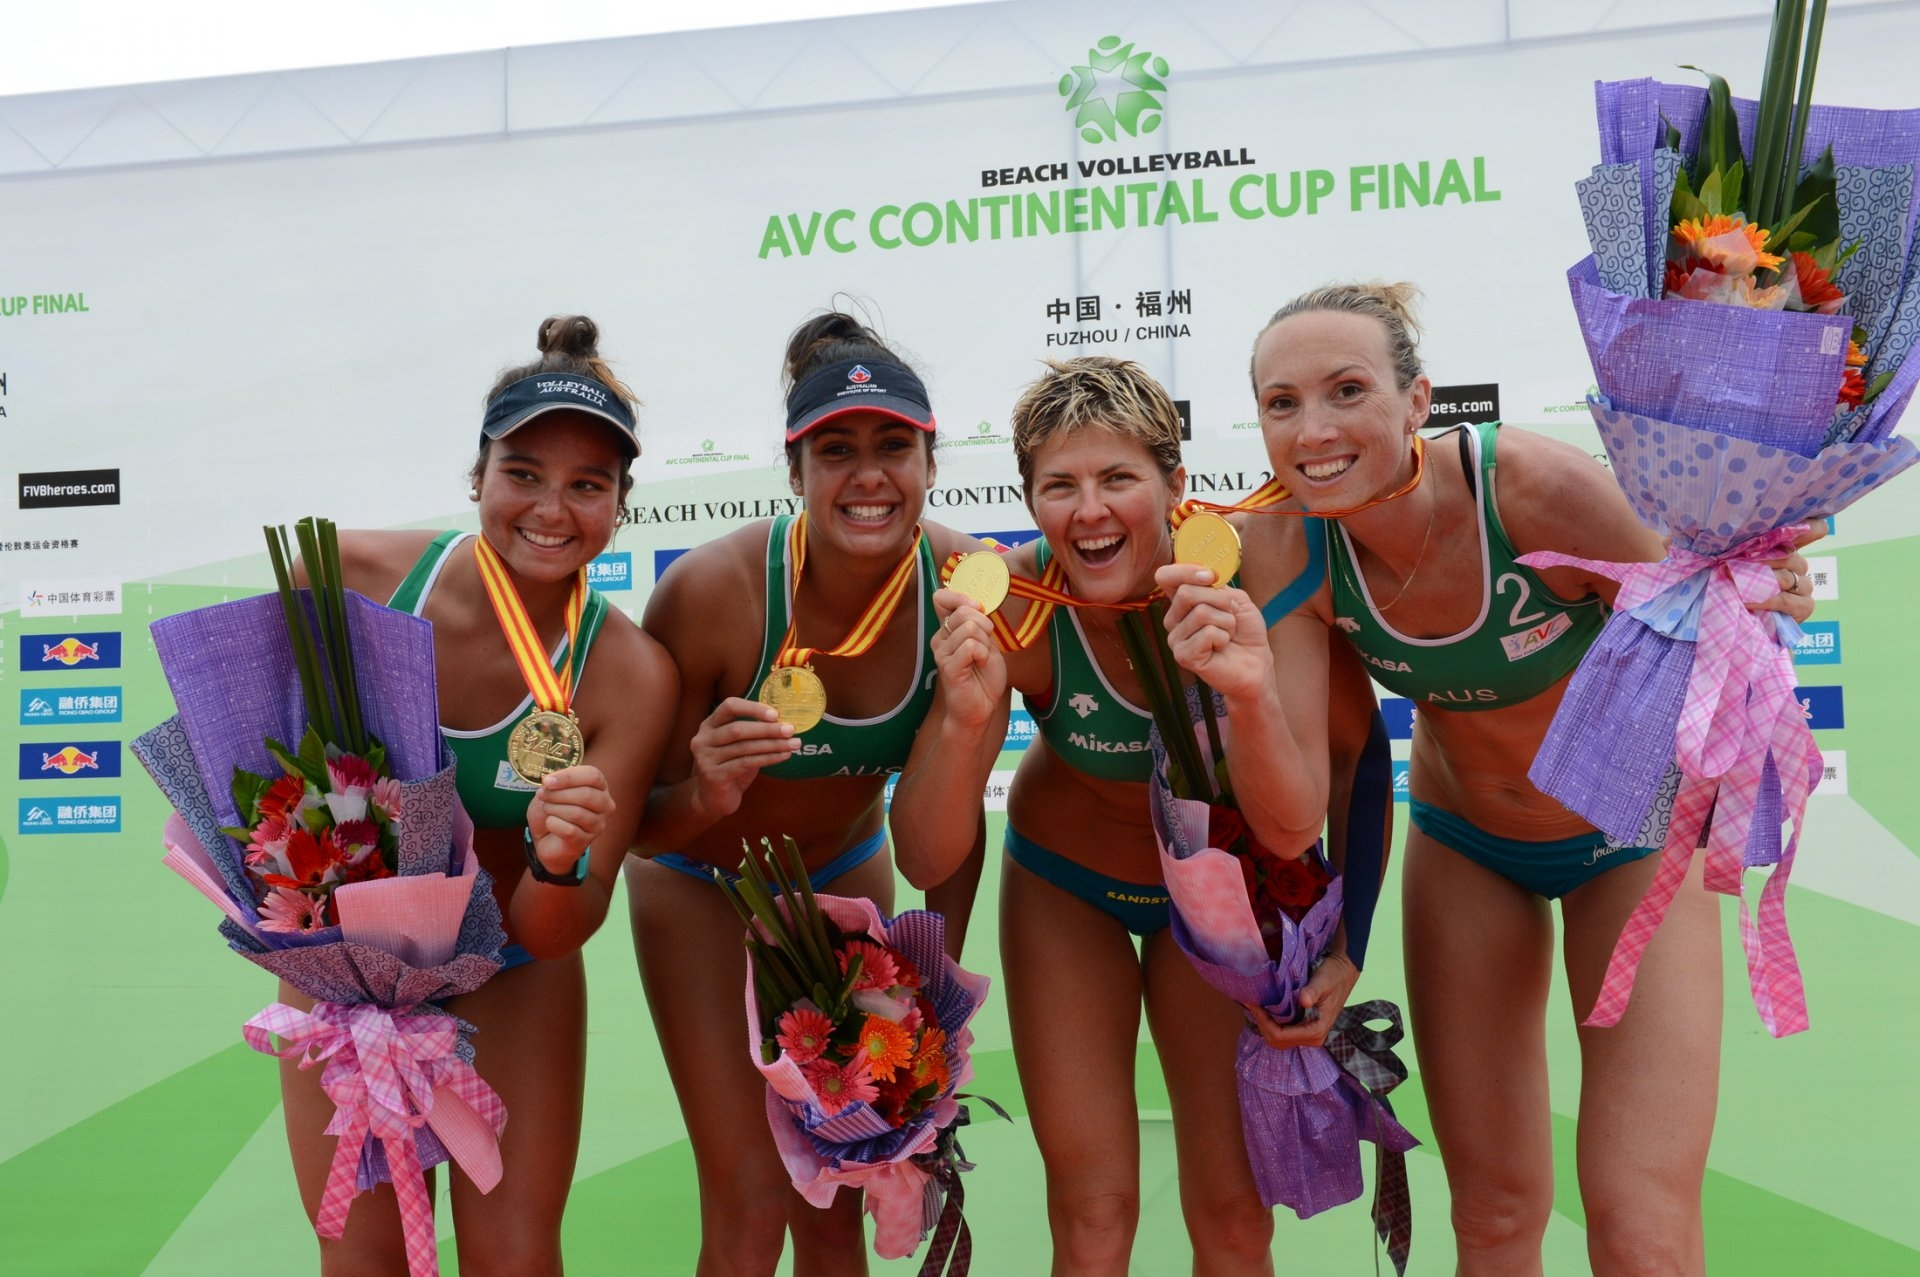 Artacho and Clancy with Australian legend Natalie Cook and her partner Tamsin Hinchley in 2012 (Photocredit: FIVB)